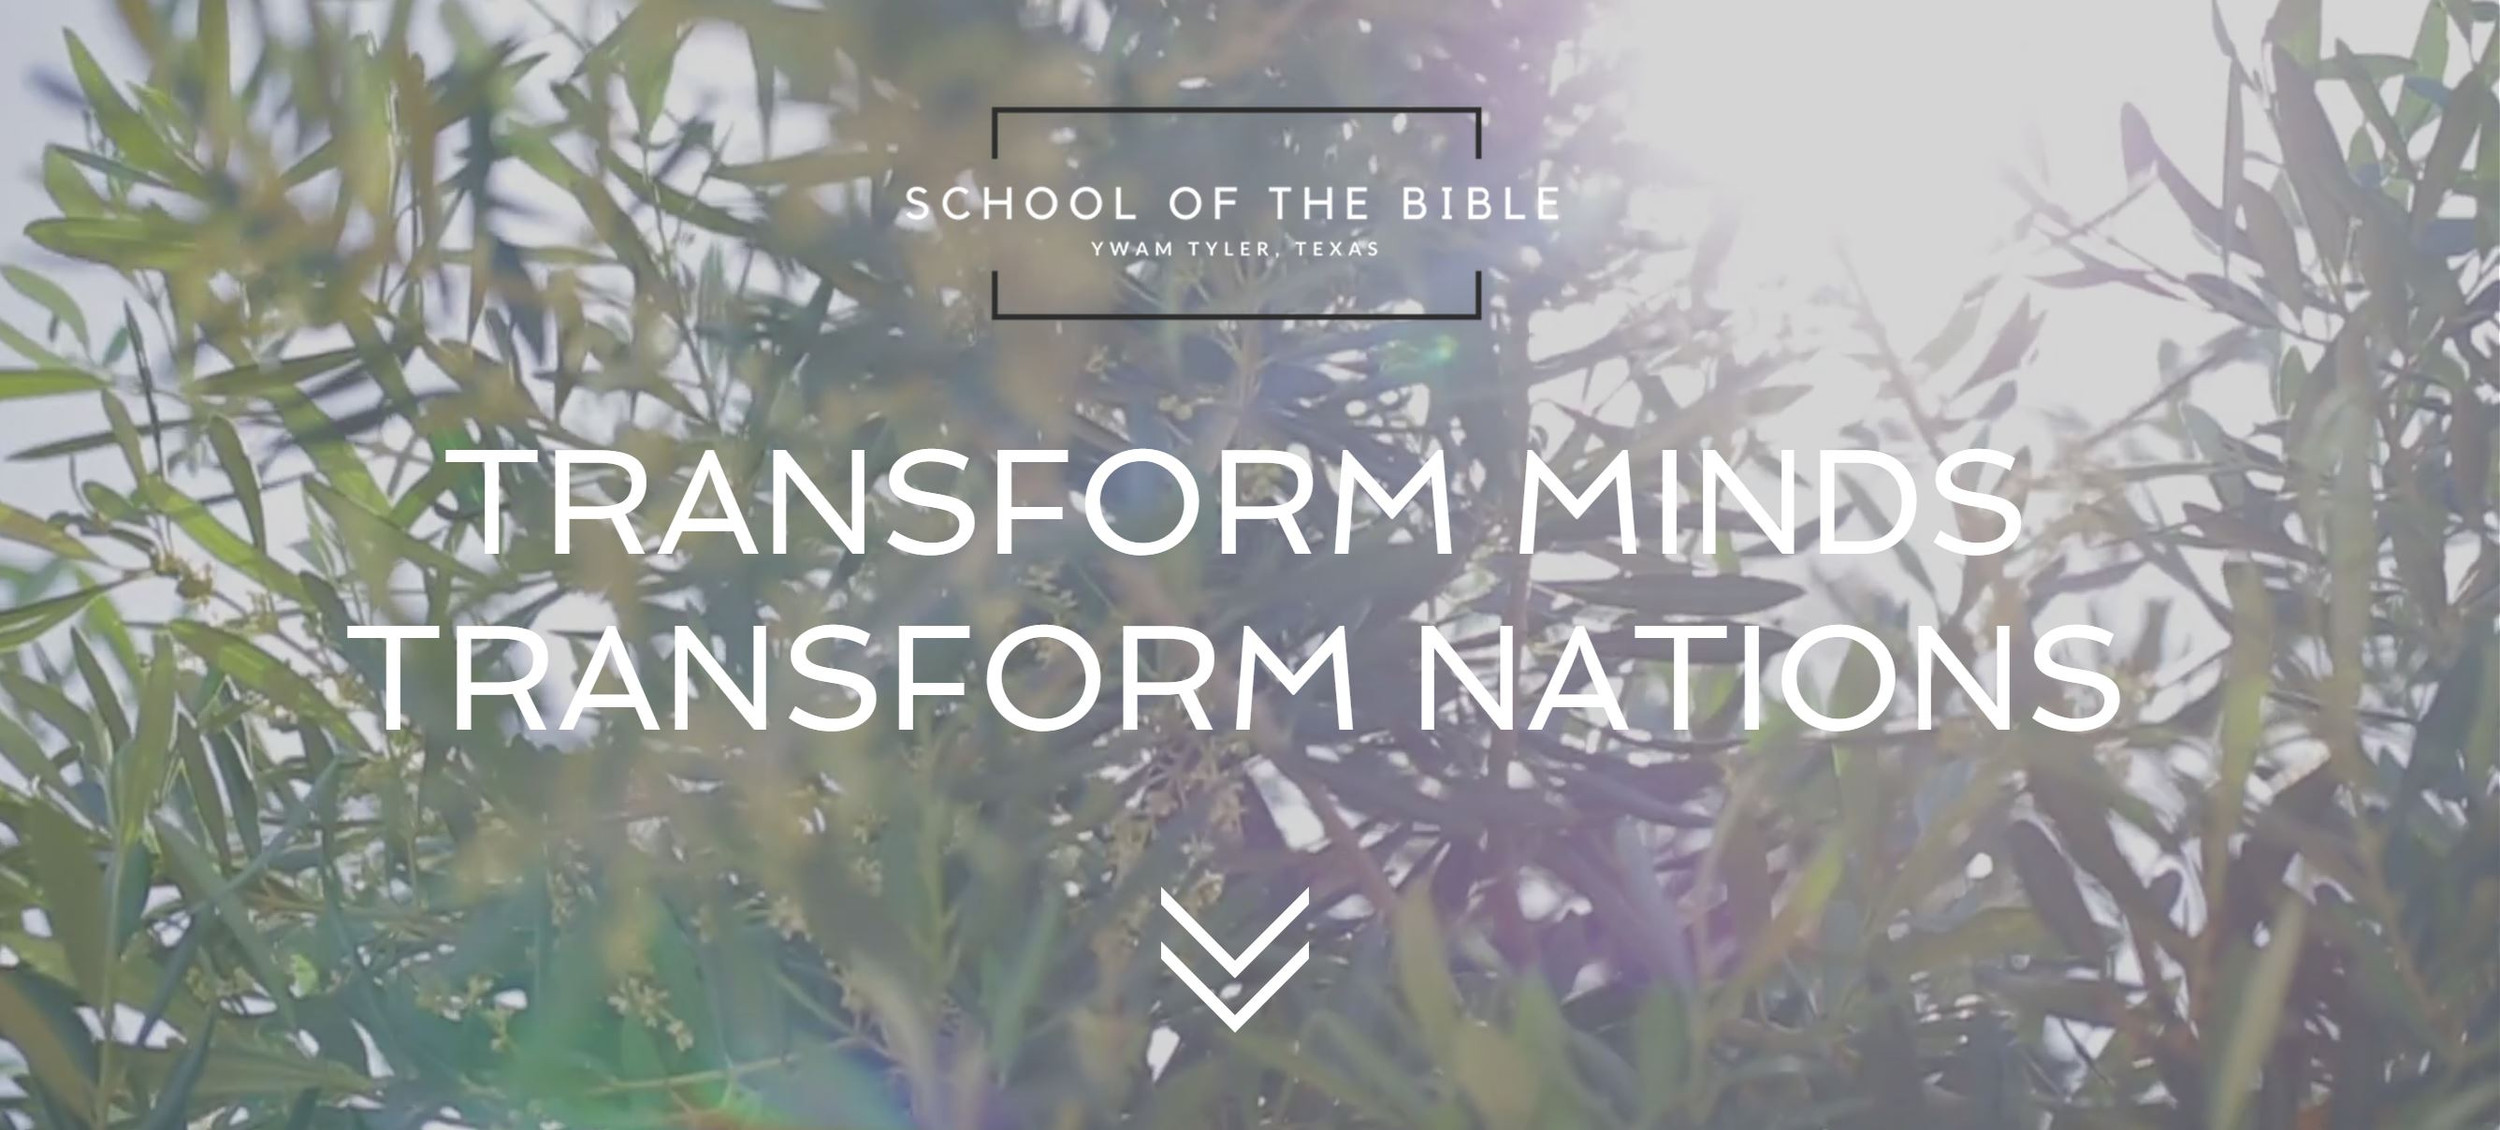 School of the Bible | YWAM Tyler, Texas